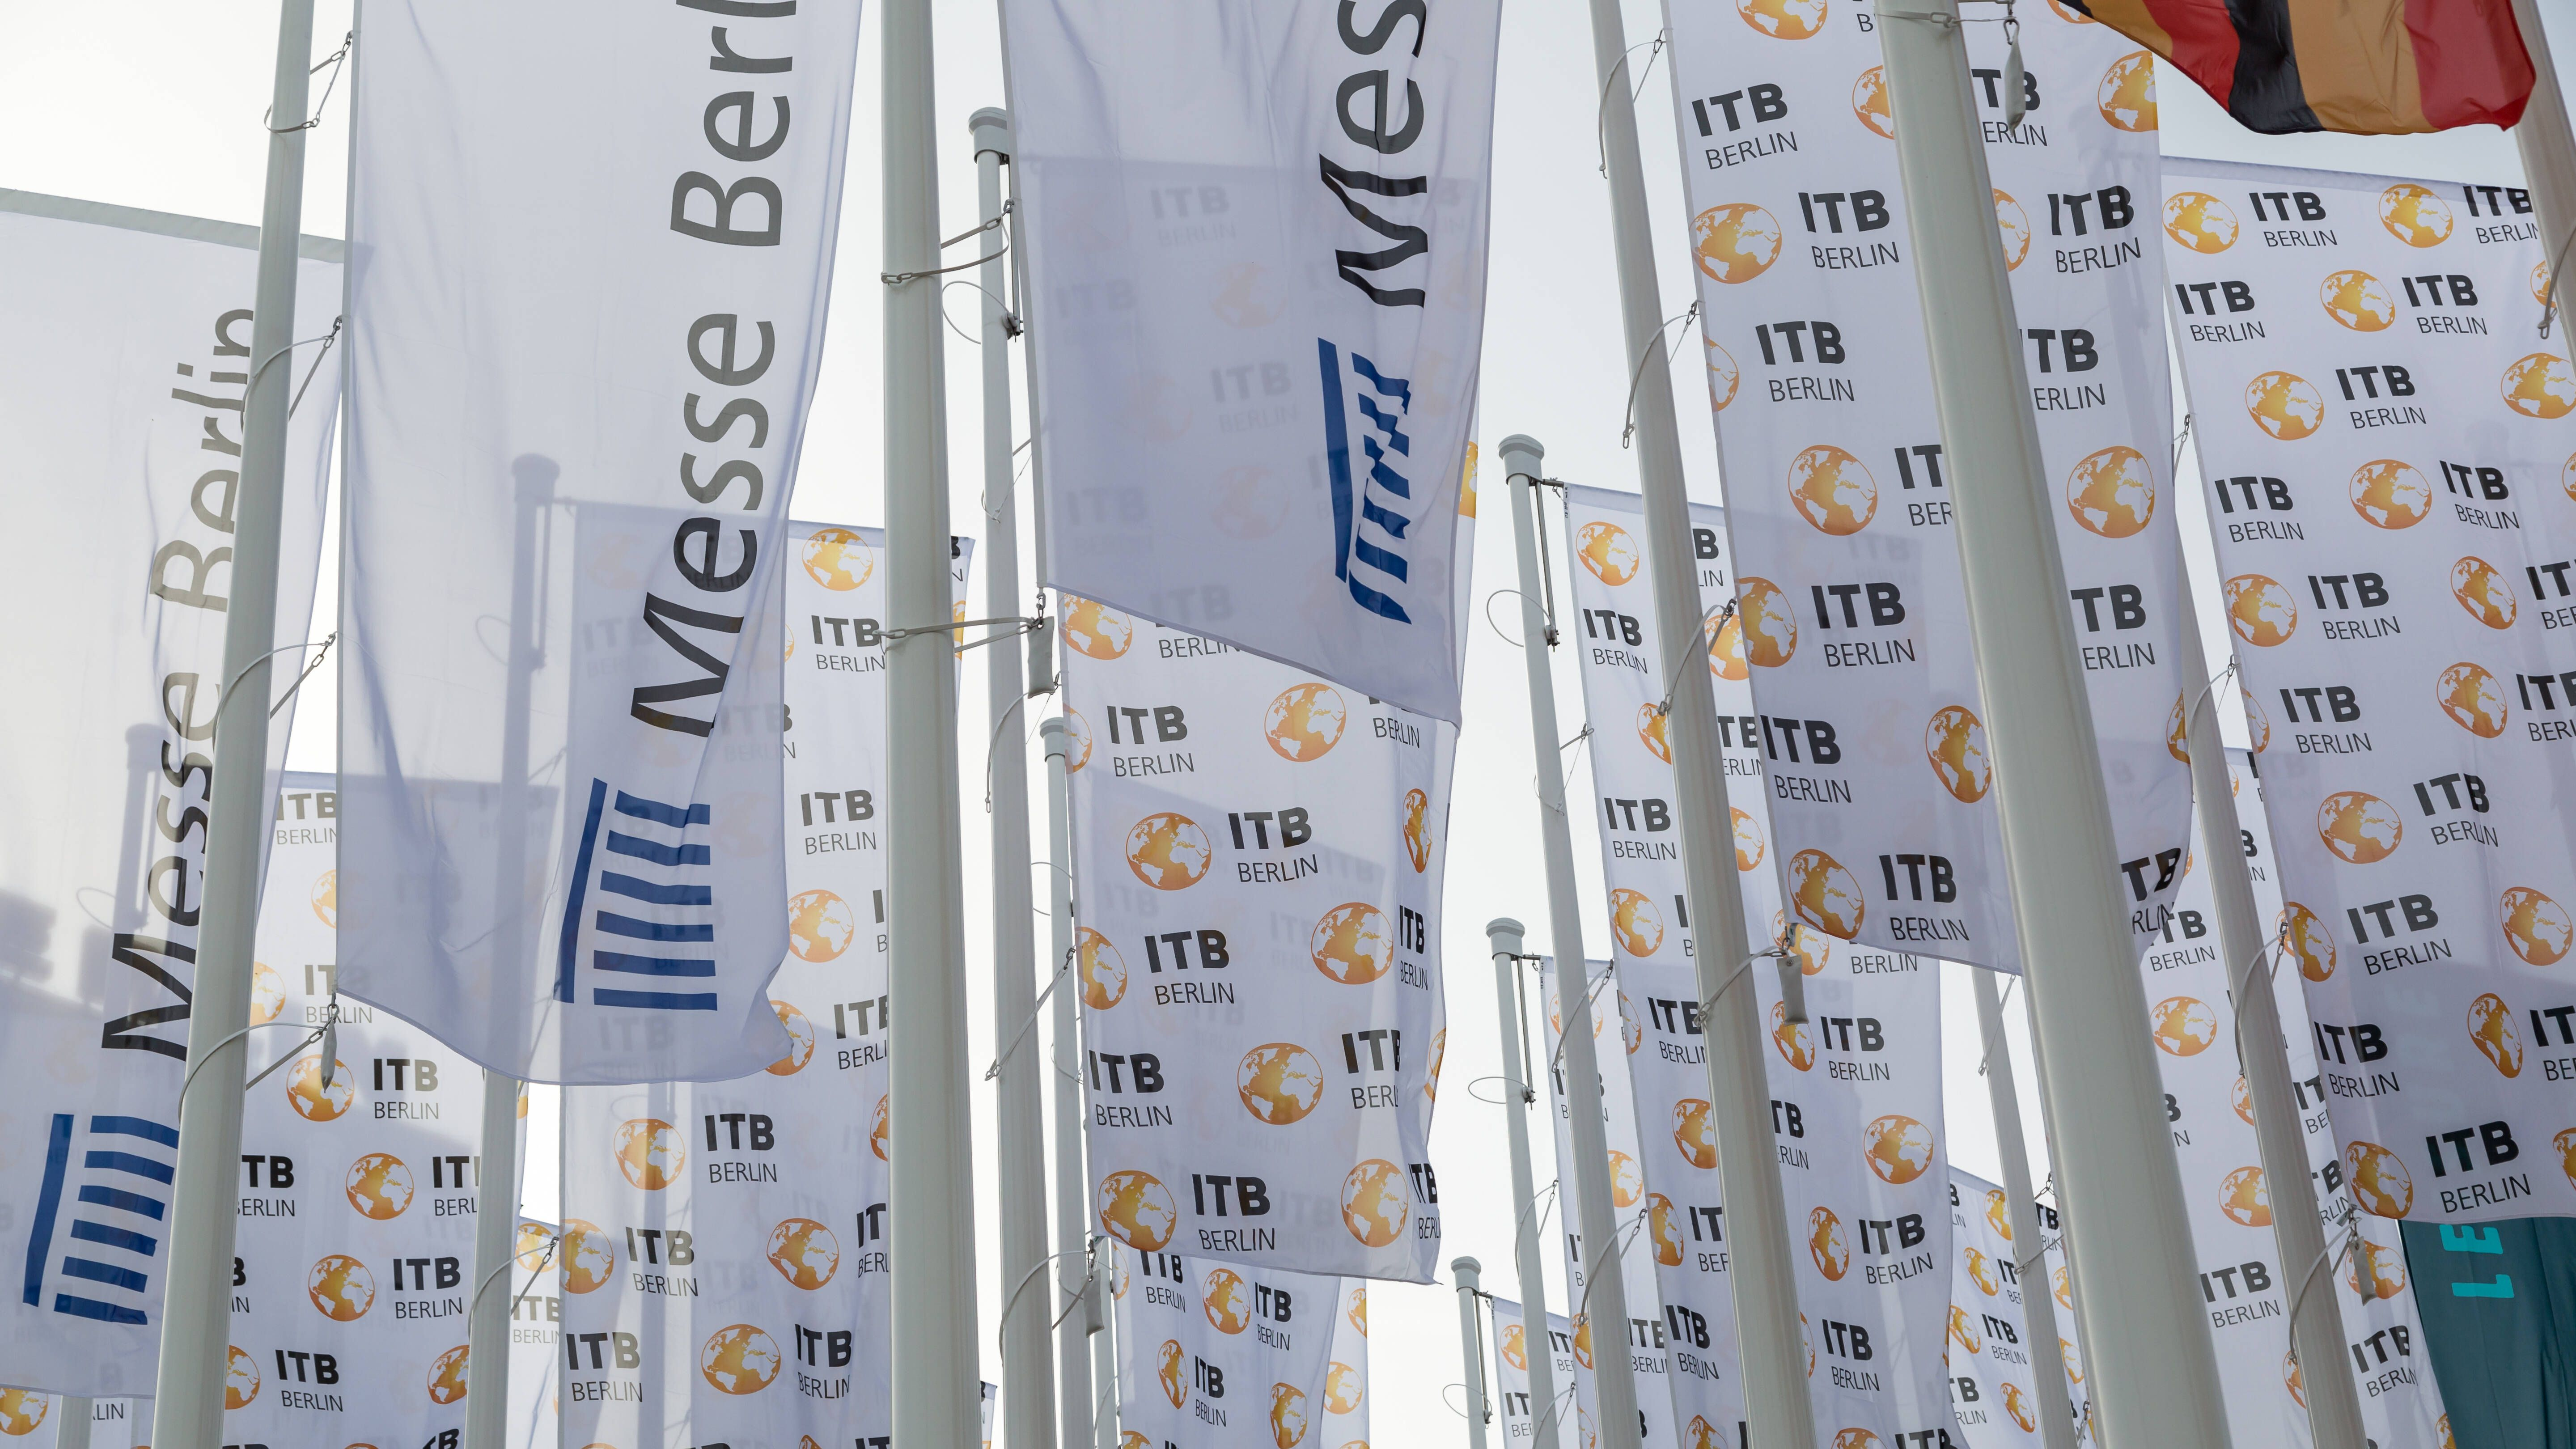 After this year's cancellation, ITB 2021 will take place as a face-to-face event, says trade fair boss David Ruetz.